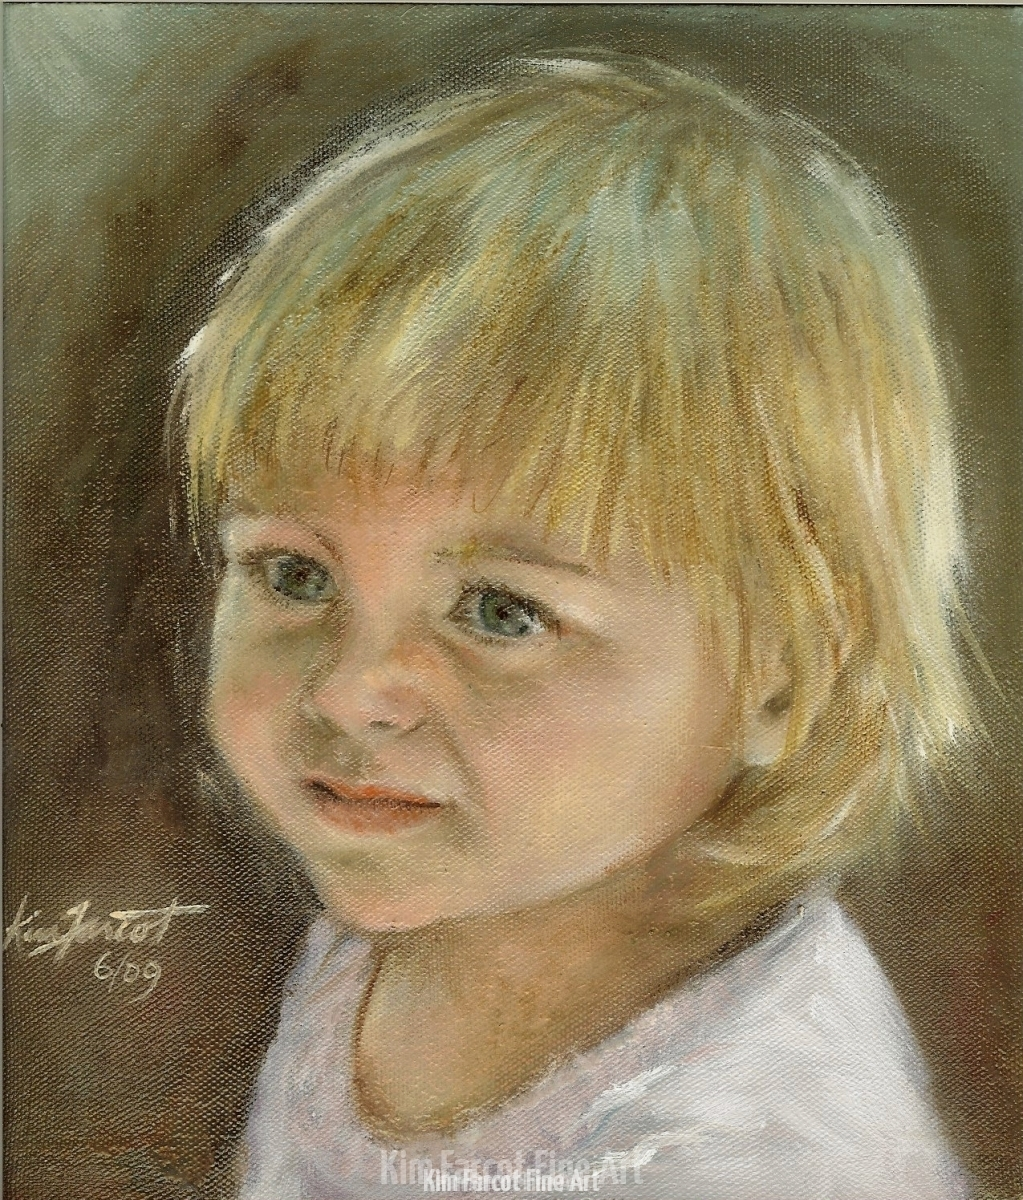 Madi 09, private collection, Florida